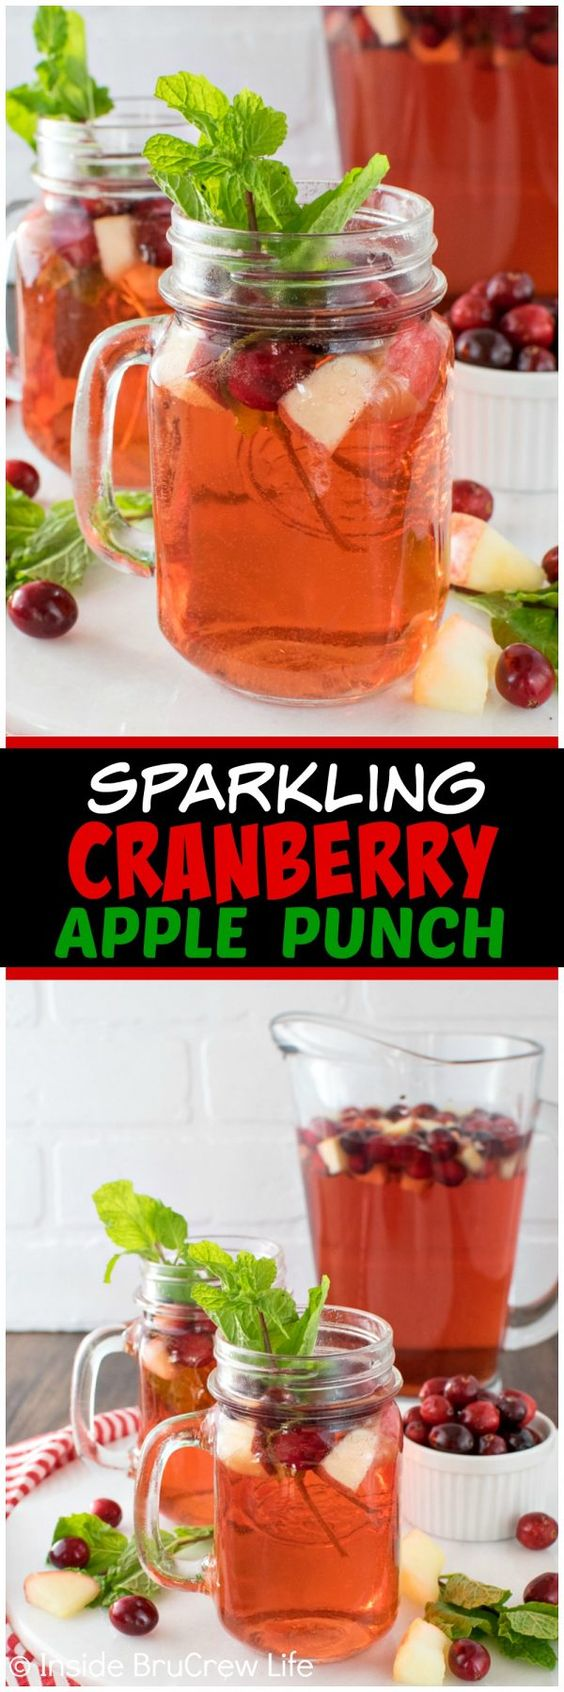 Sparkling Cranberry Apple Punch - this easy 3 ingredient punch is a delicious drink recipe that everyone can enjoy at parties!